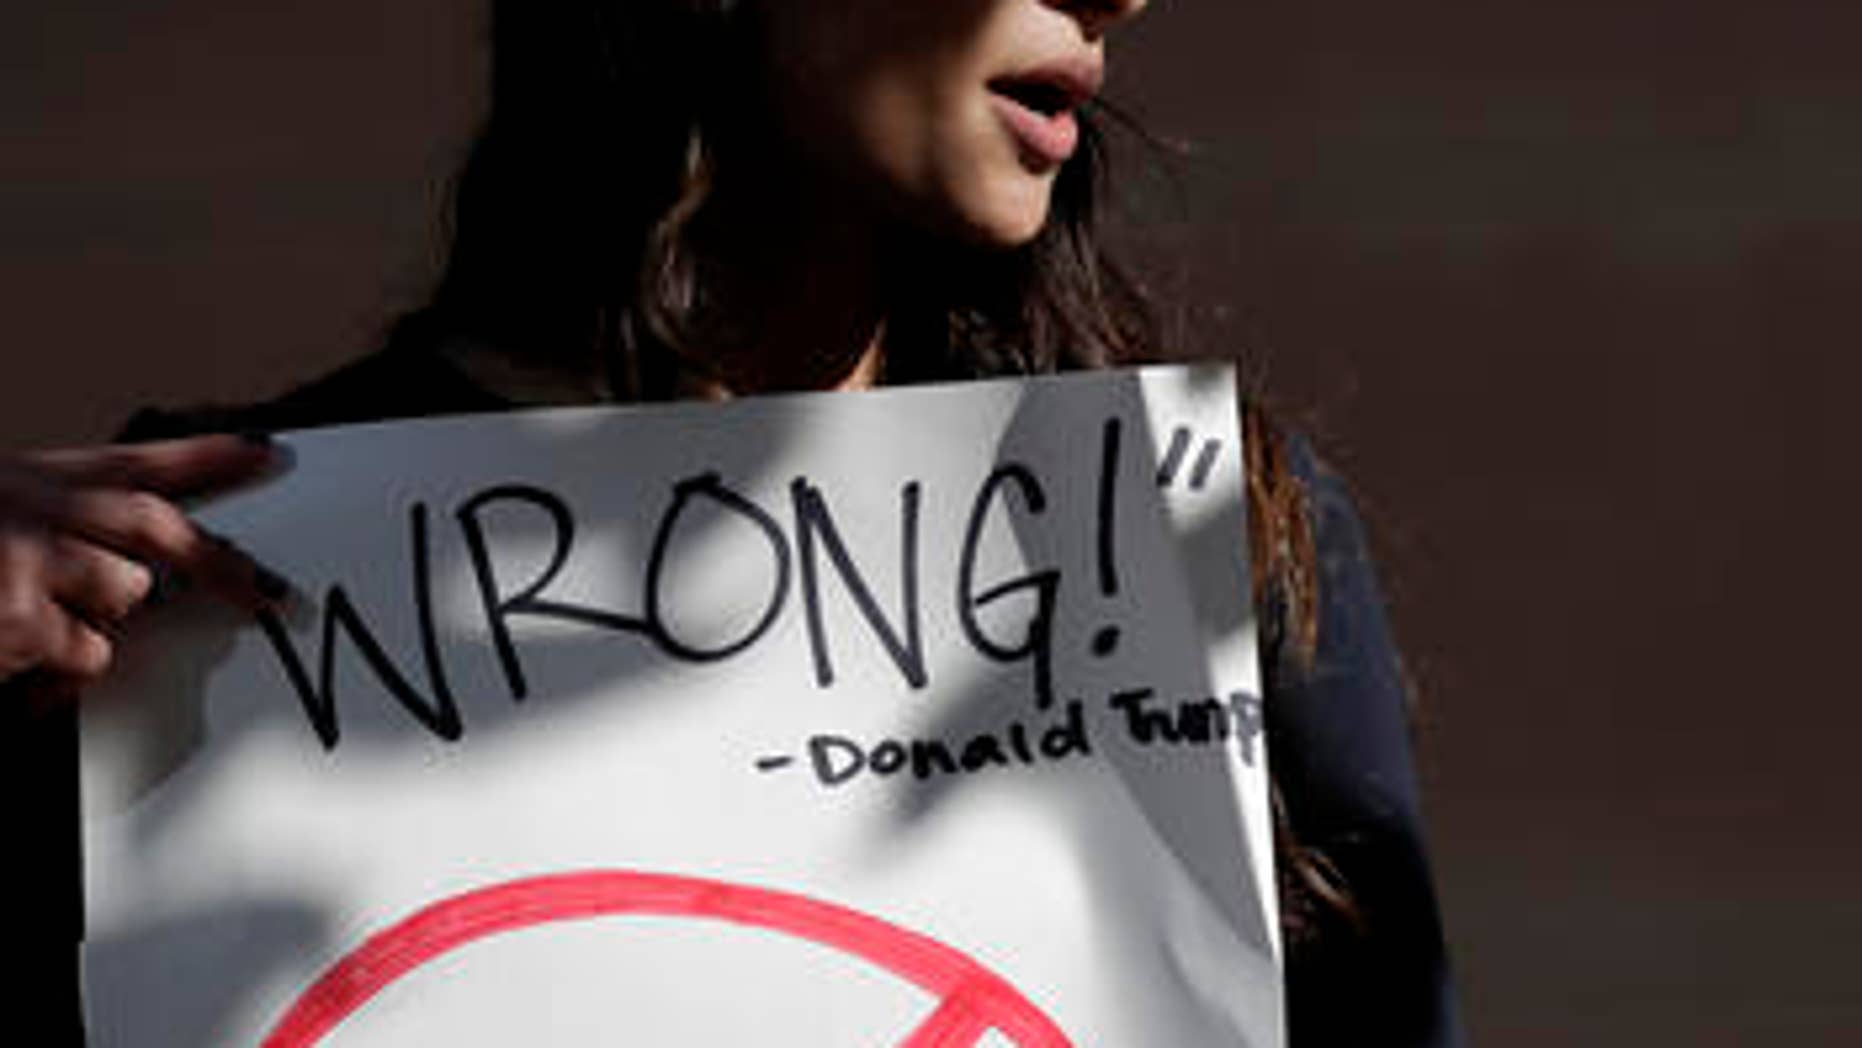 Senya Merchant holds a sign against President-elect Donald Trump's now-defunct Trump University Friday, Nov. 18, 2016, in San Diego. Trump agreed Friday to pay $25 million to settle several lawsuits alleging that his former school for real estate investors defrauded students who paid up to $35,000 to enroll in Trump University programs.(AP Photo/Gregory Bull)